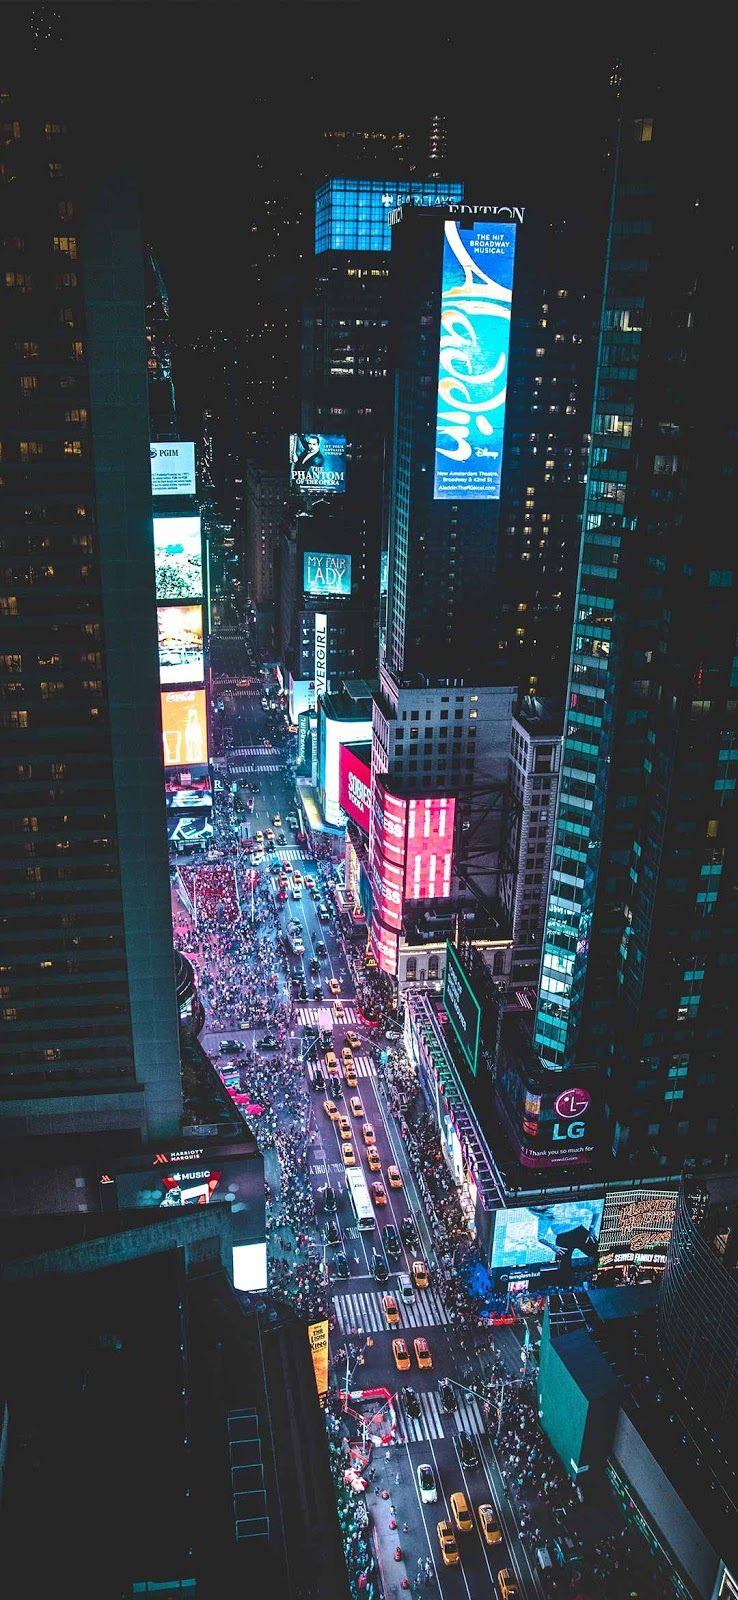 ِAerial photo of a busy city during night